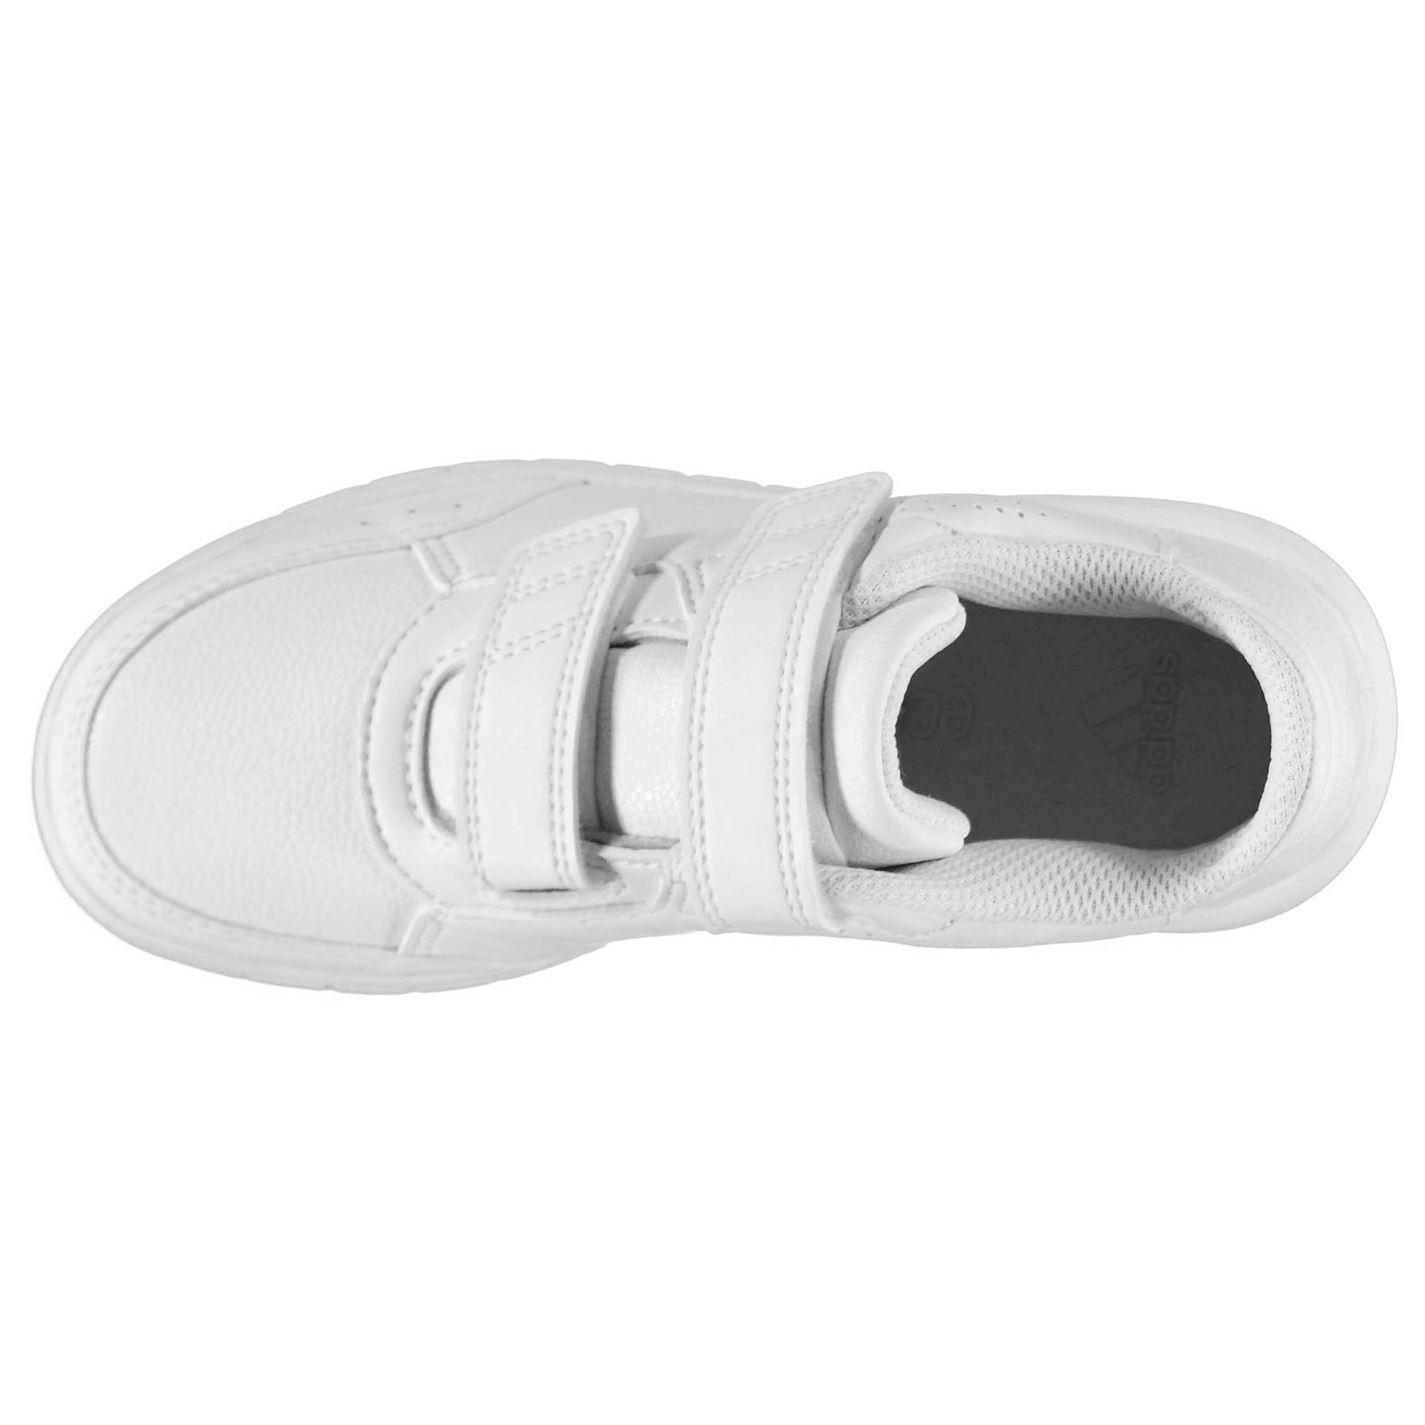 35b99f3bed70 adidas Kids Alta Sport CF Boys Trainers Shoes Touch and Close ...